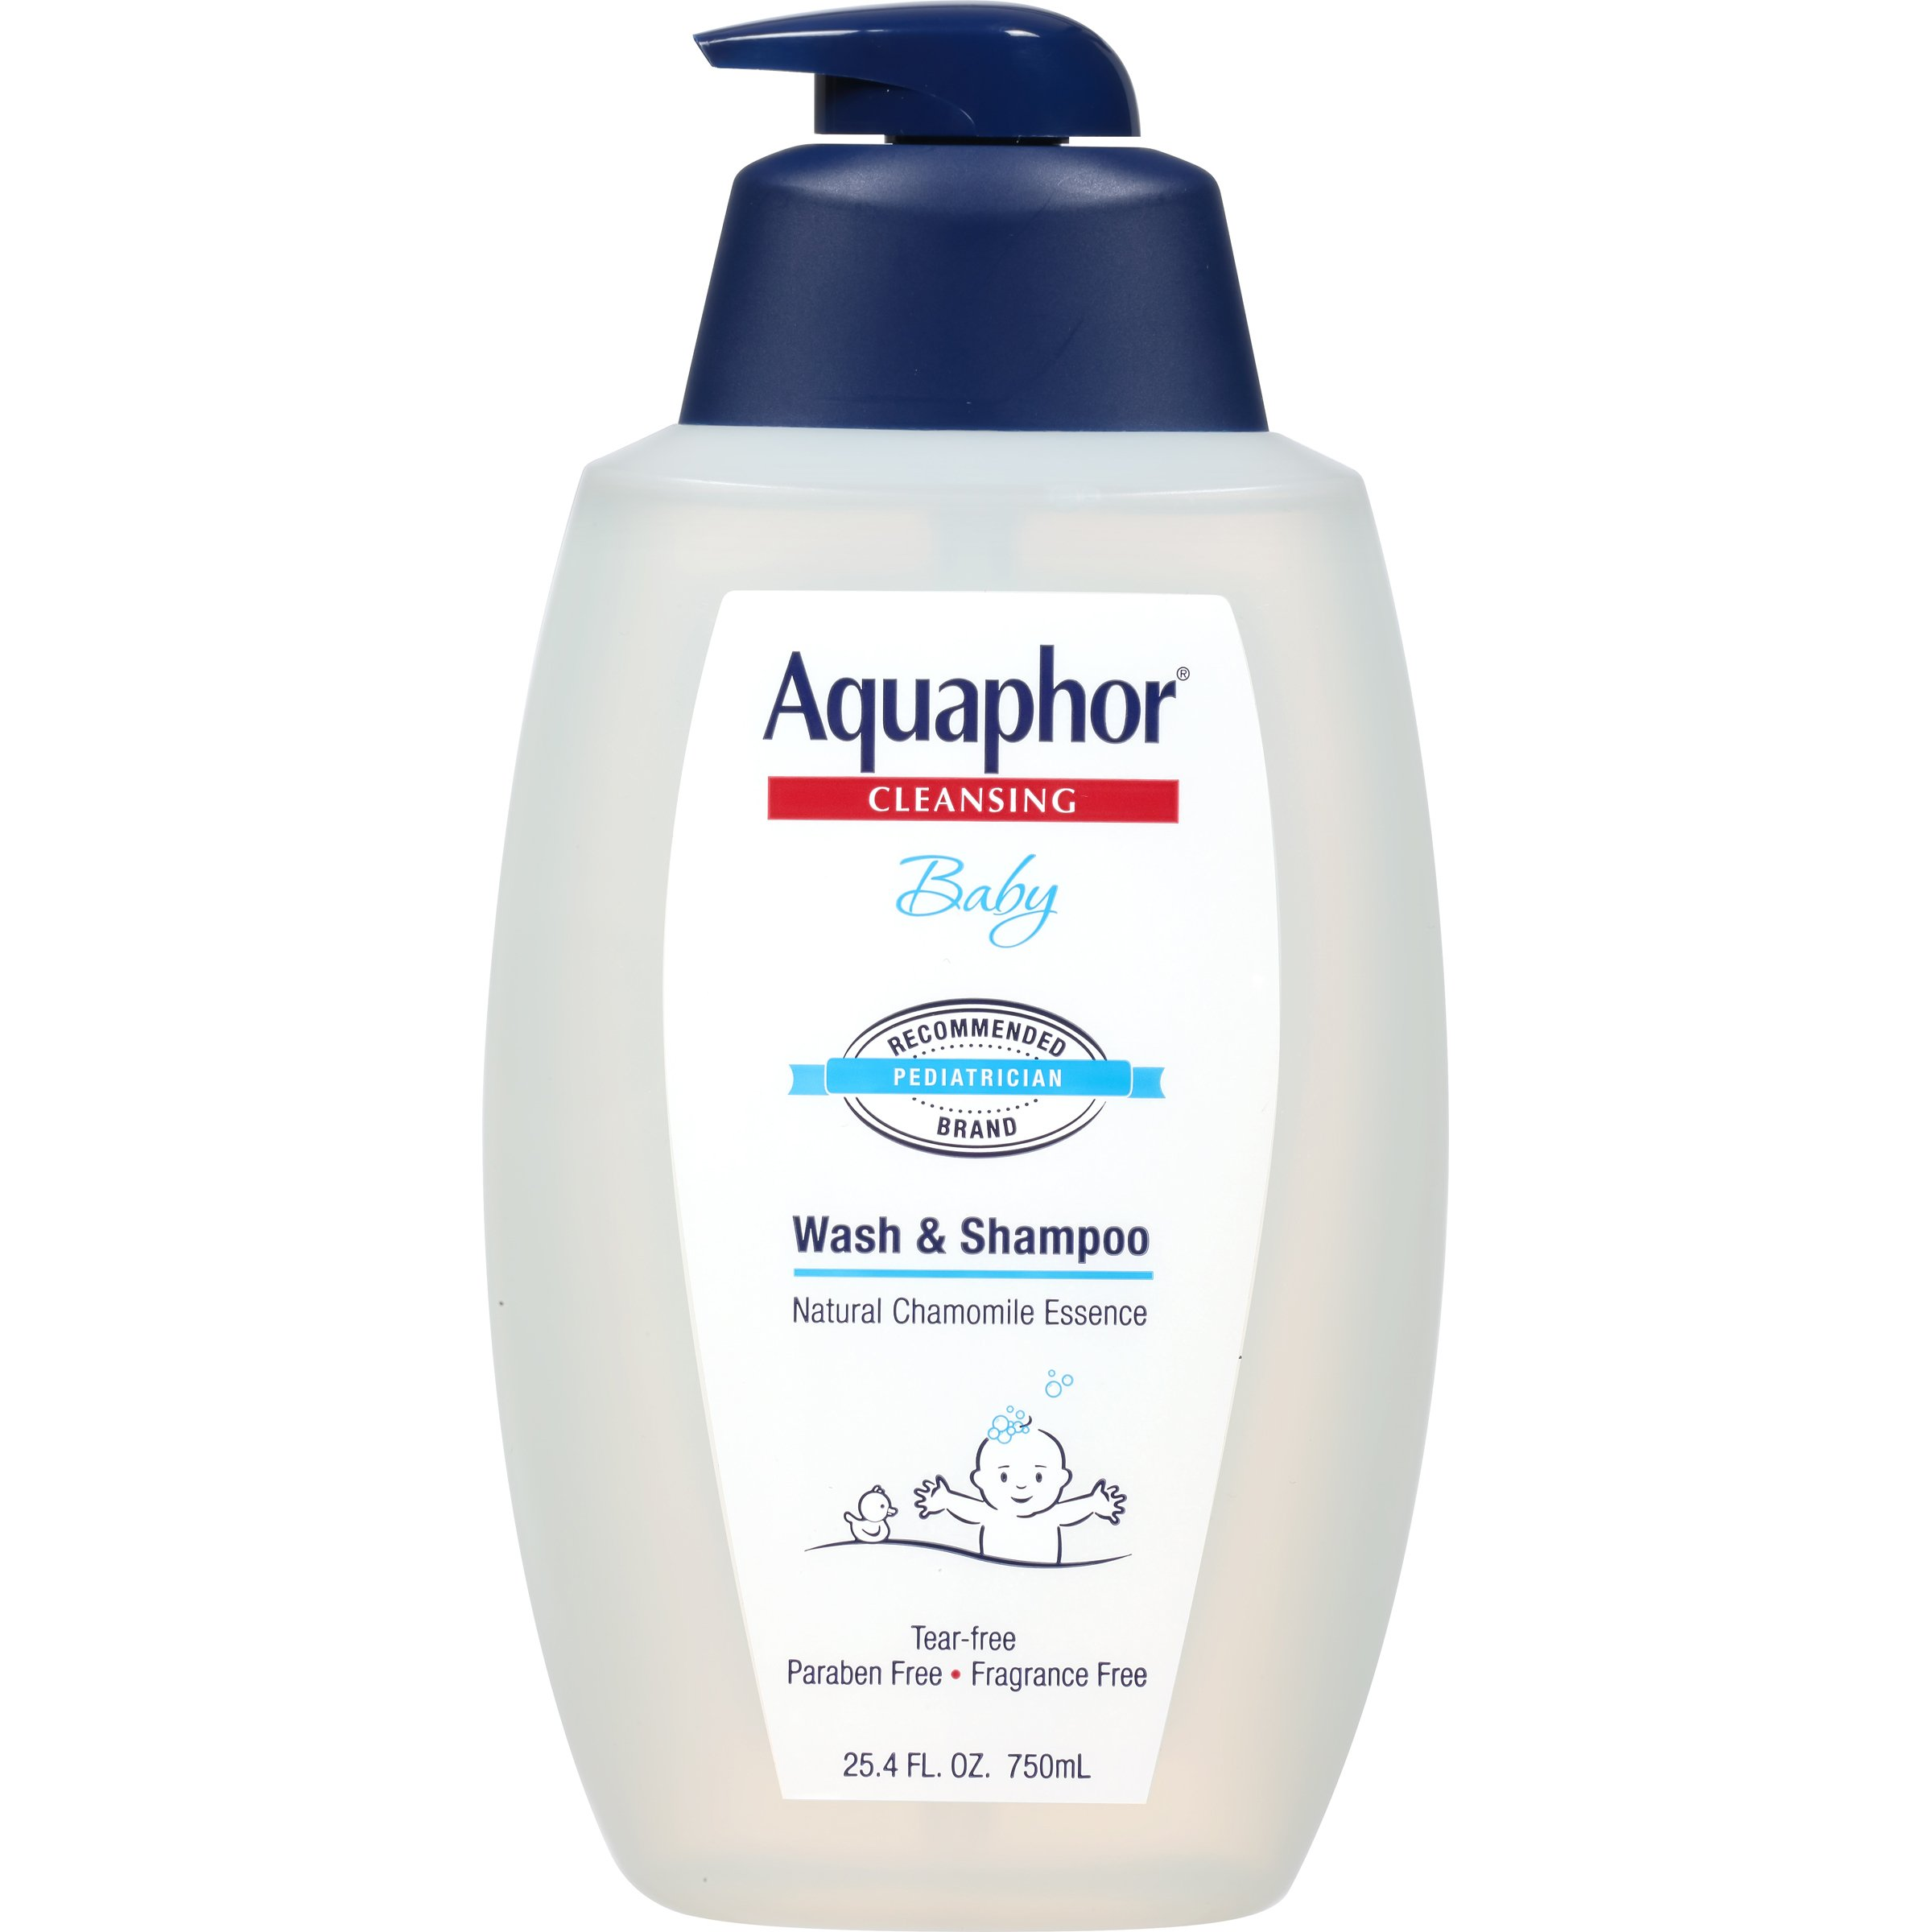 Aquaphor Baby Wash and Shampoo, 25.4 Fluid Ounce - Pediatrician Recommended Brand